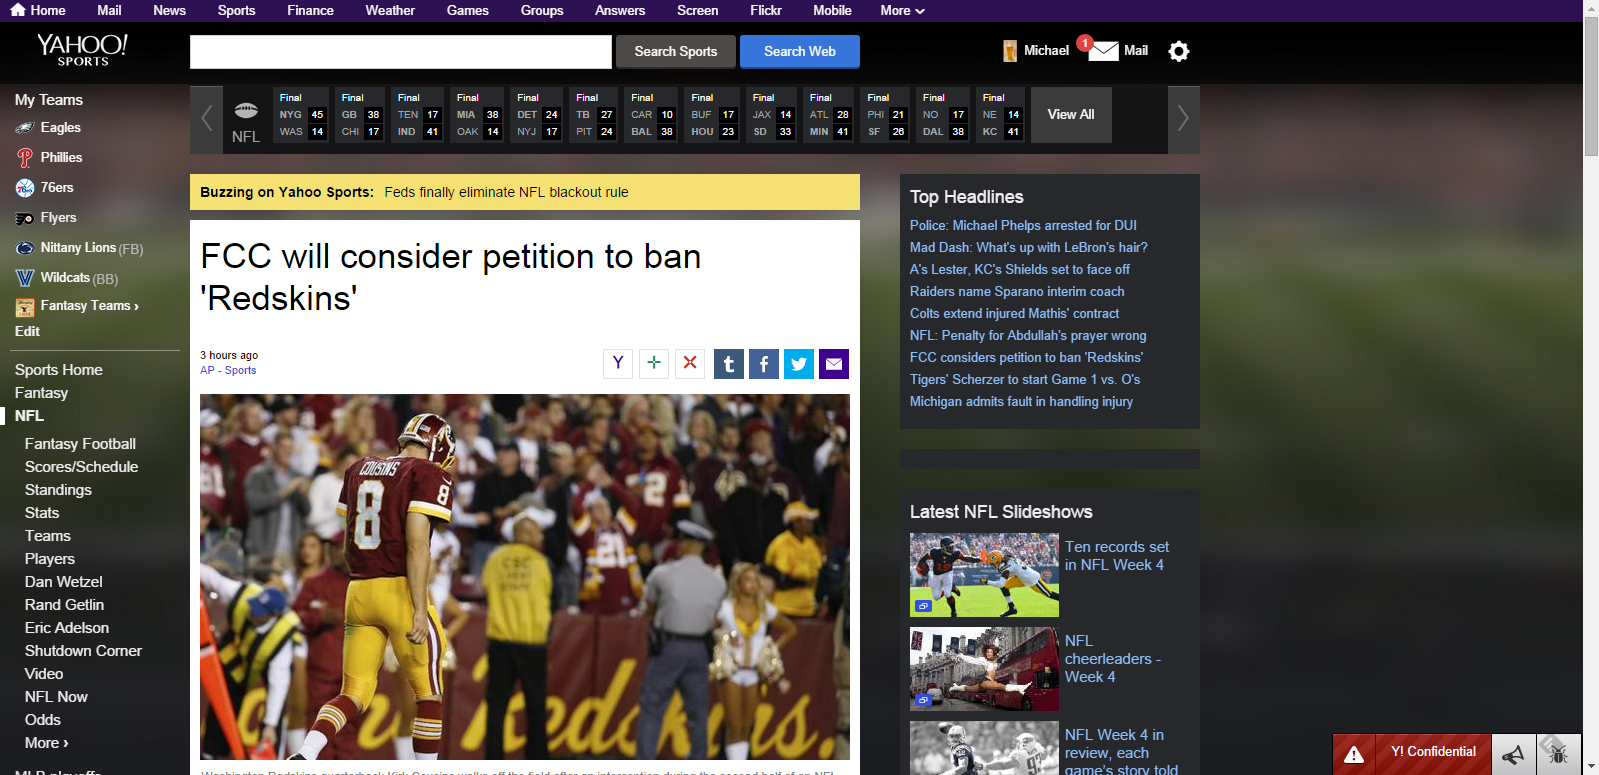 yahoo sports pages leaking browser tab with links to backyard